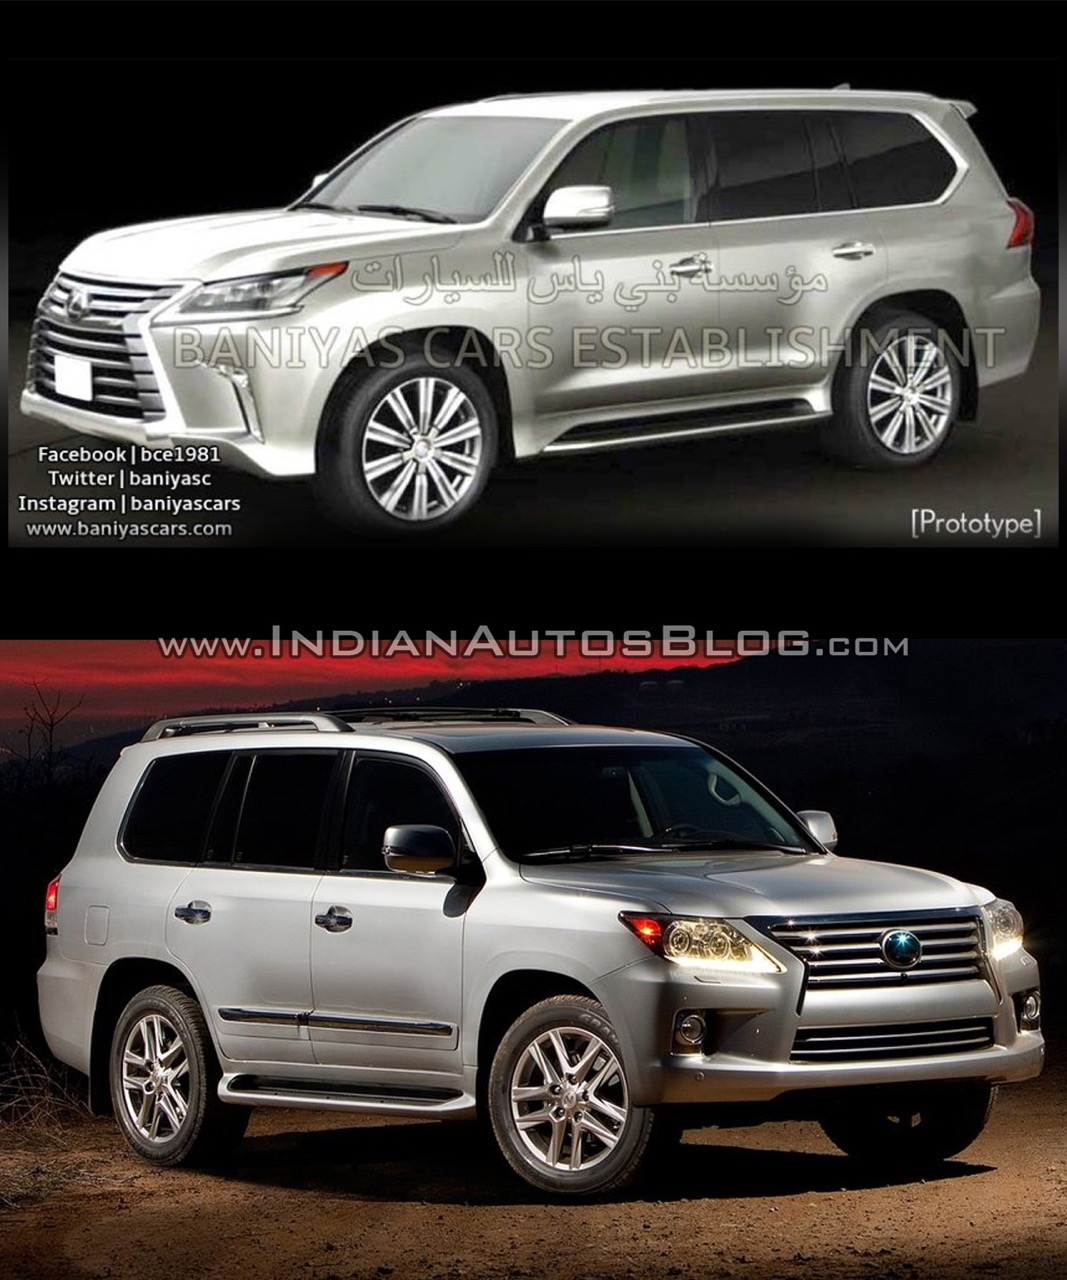 Lexus Latest Models >> 2016 Lexus Lx570 Vs 2014 Lexus Lx570 Old Vs New